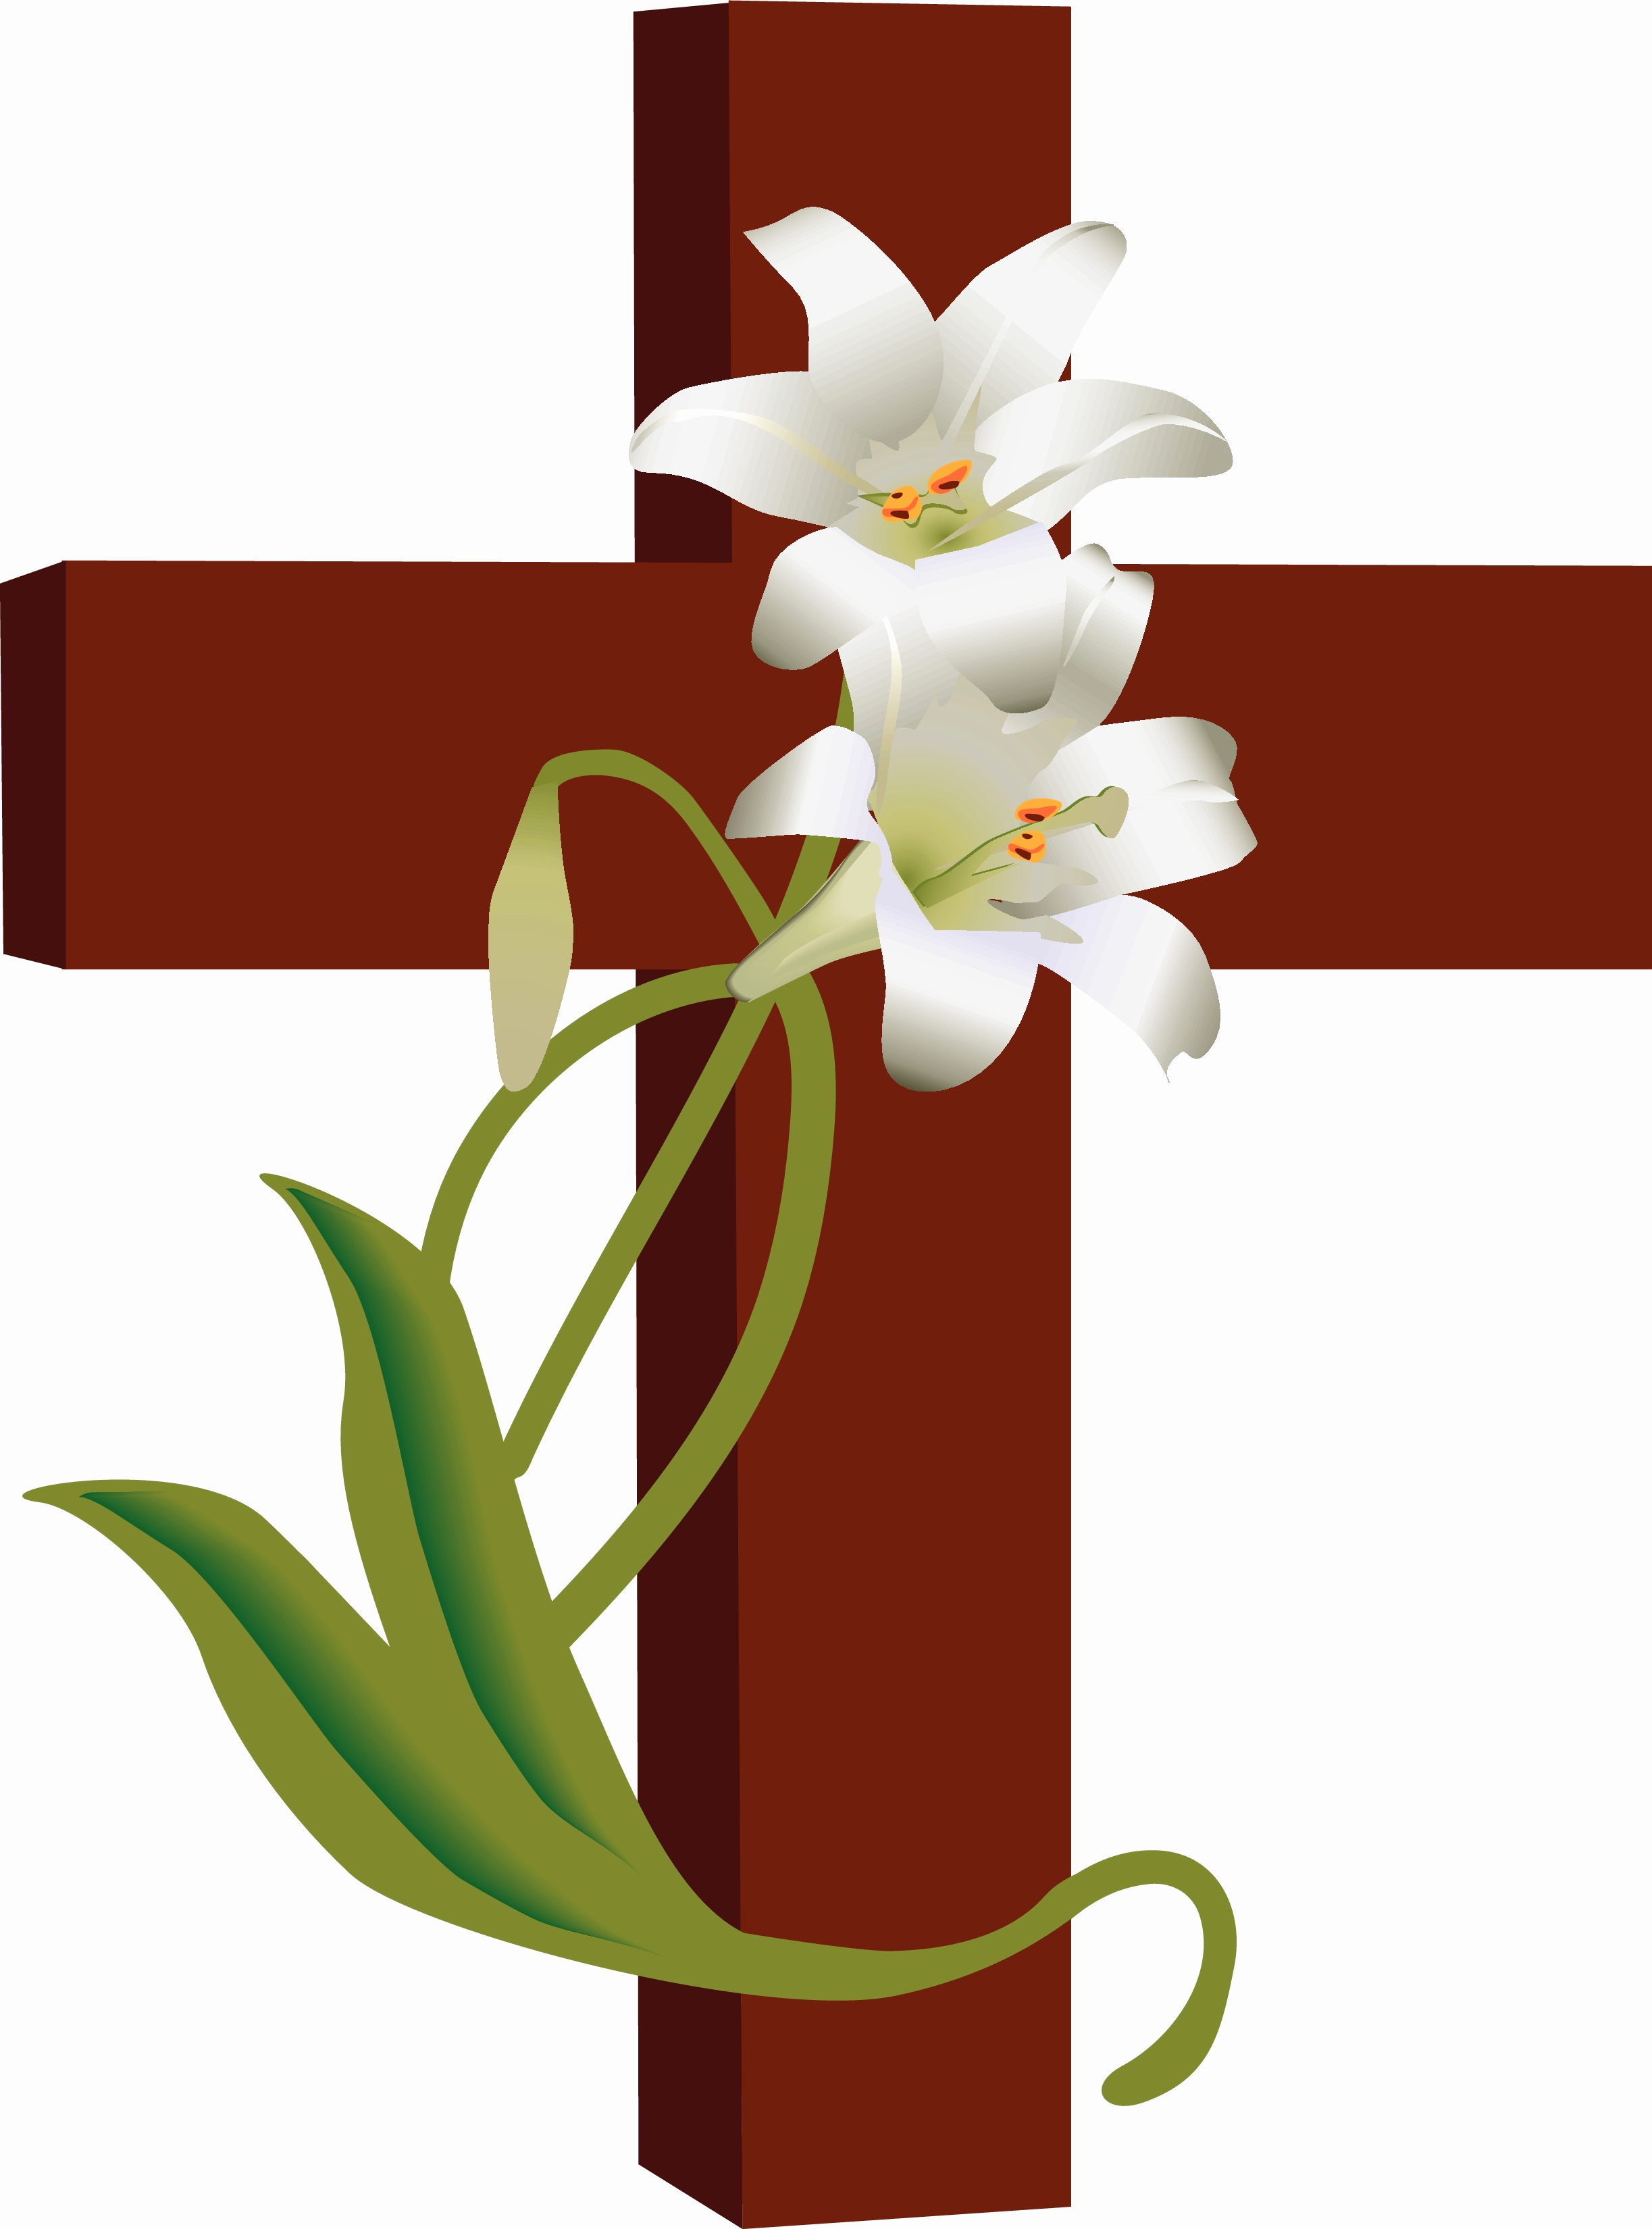 Best Free Clip Art Elegant Cross Clipart Ideas On Easter Images 6 2 Clipartix